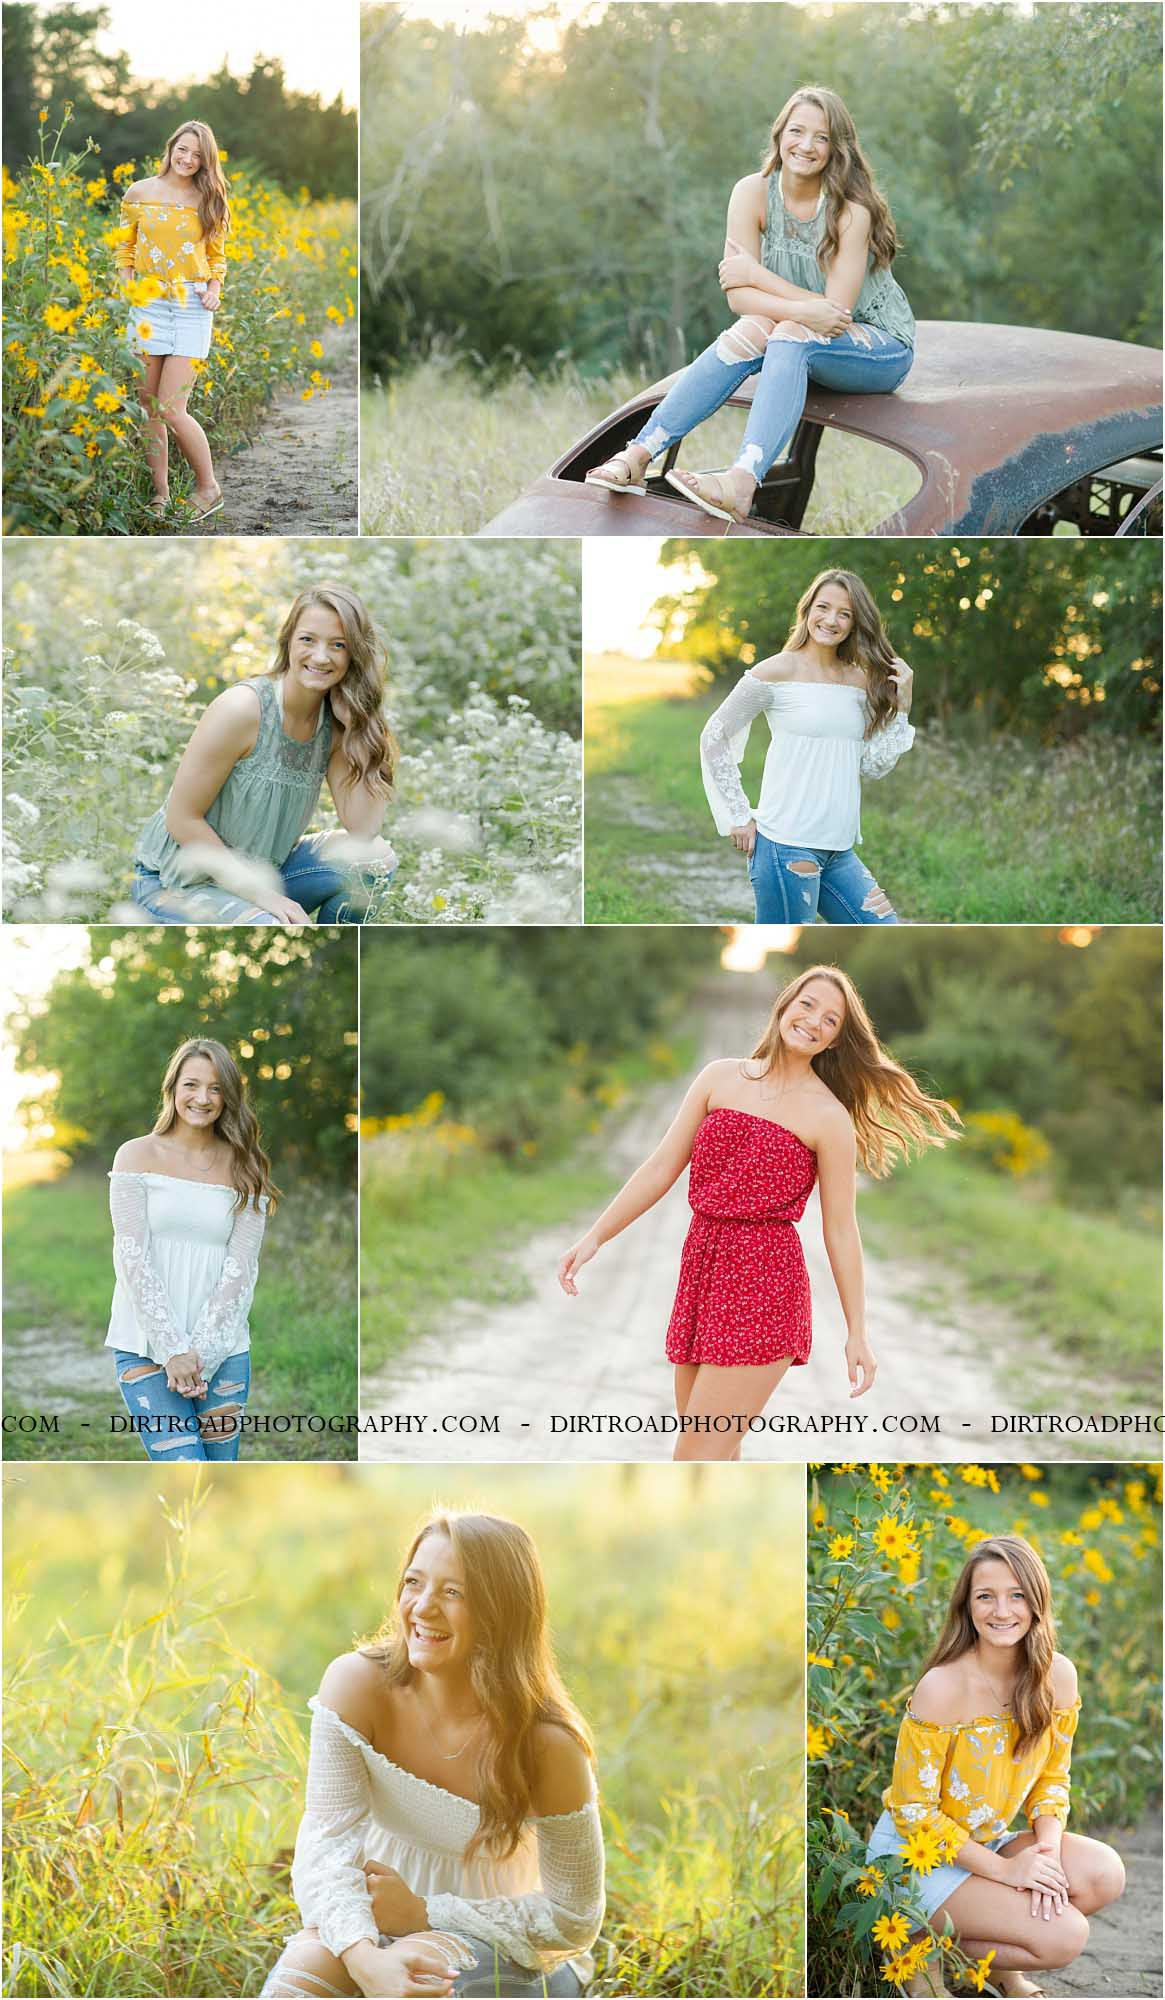 images of high school girl senior photos named lizzie kubicek of wilber nebraska who went to wilber-clatonia high school in nebraska and is part of the class of 2019. photos were taken near dorchester nebraska in saline county. photo includes road side sunflowers on a dirt road at sunset with girl in denim button up jean skirt with off the should yellow floral flowy shirt with long brown hair. old rustic abandoned car in senior pictures with skinny brown haired girl sitting on car at sunset with trees and tall green grass surrounding it. dirt road surrounded by trees and dust at sunset. tall grass with a sunset behind as well. photographer is kelsey homolka nerud of wilber nebraska who specializes in high school senior photography and senior pictures.